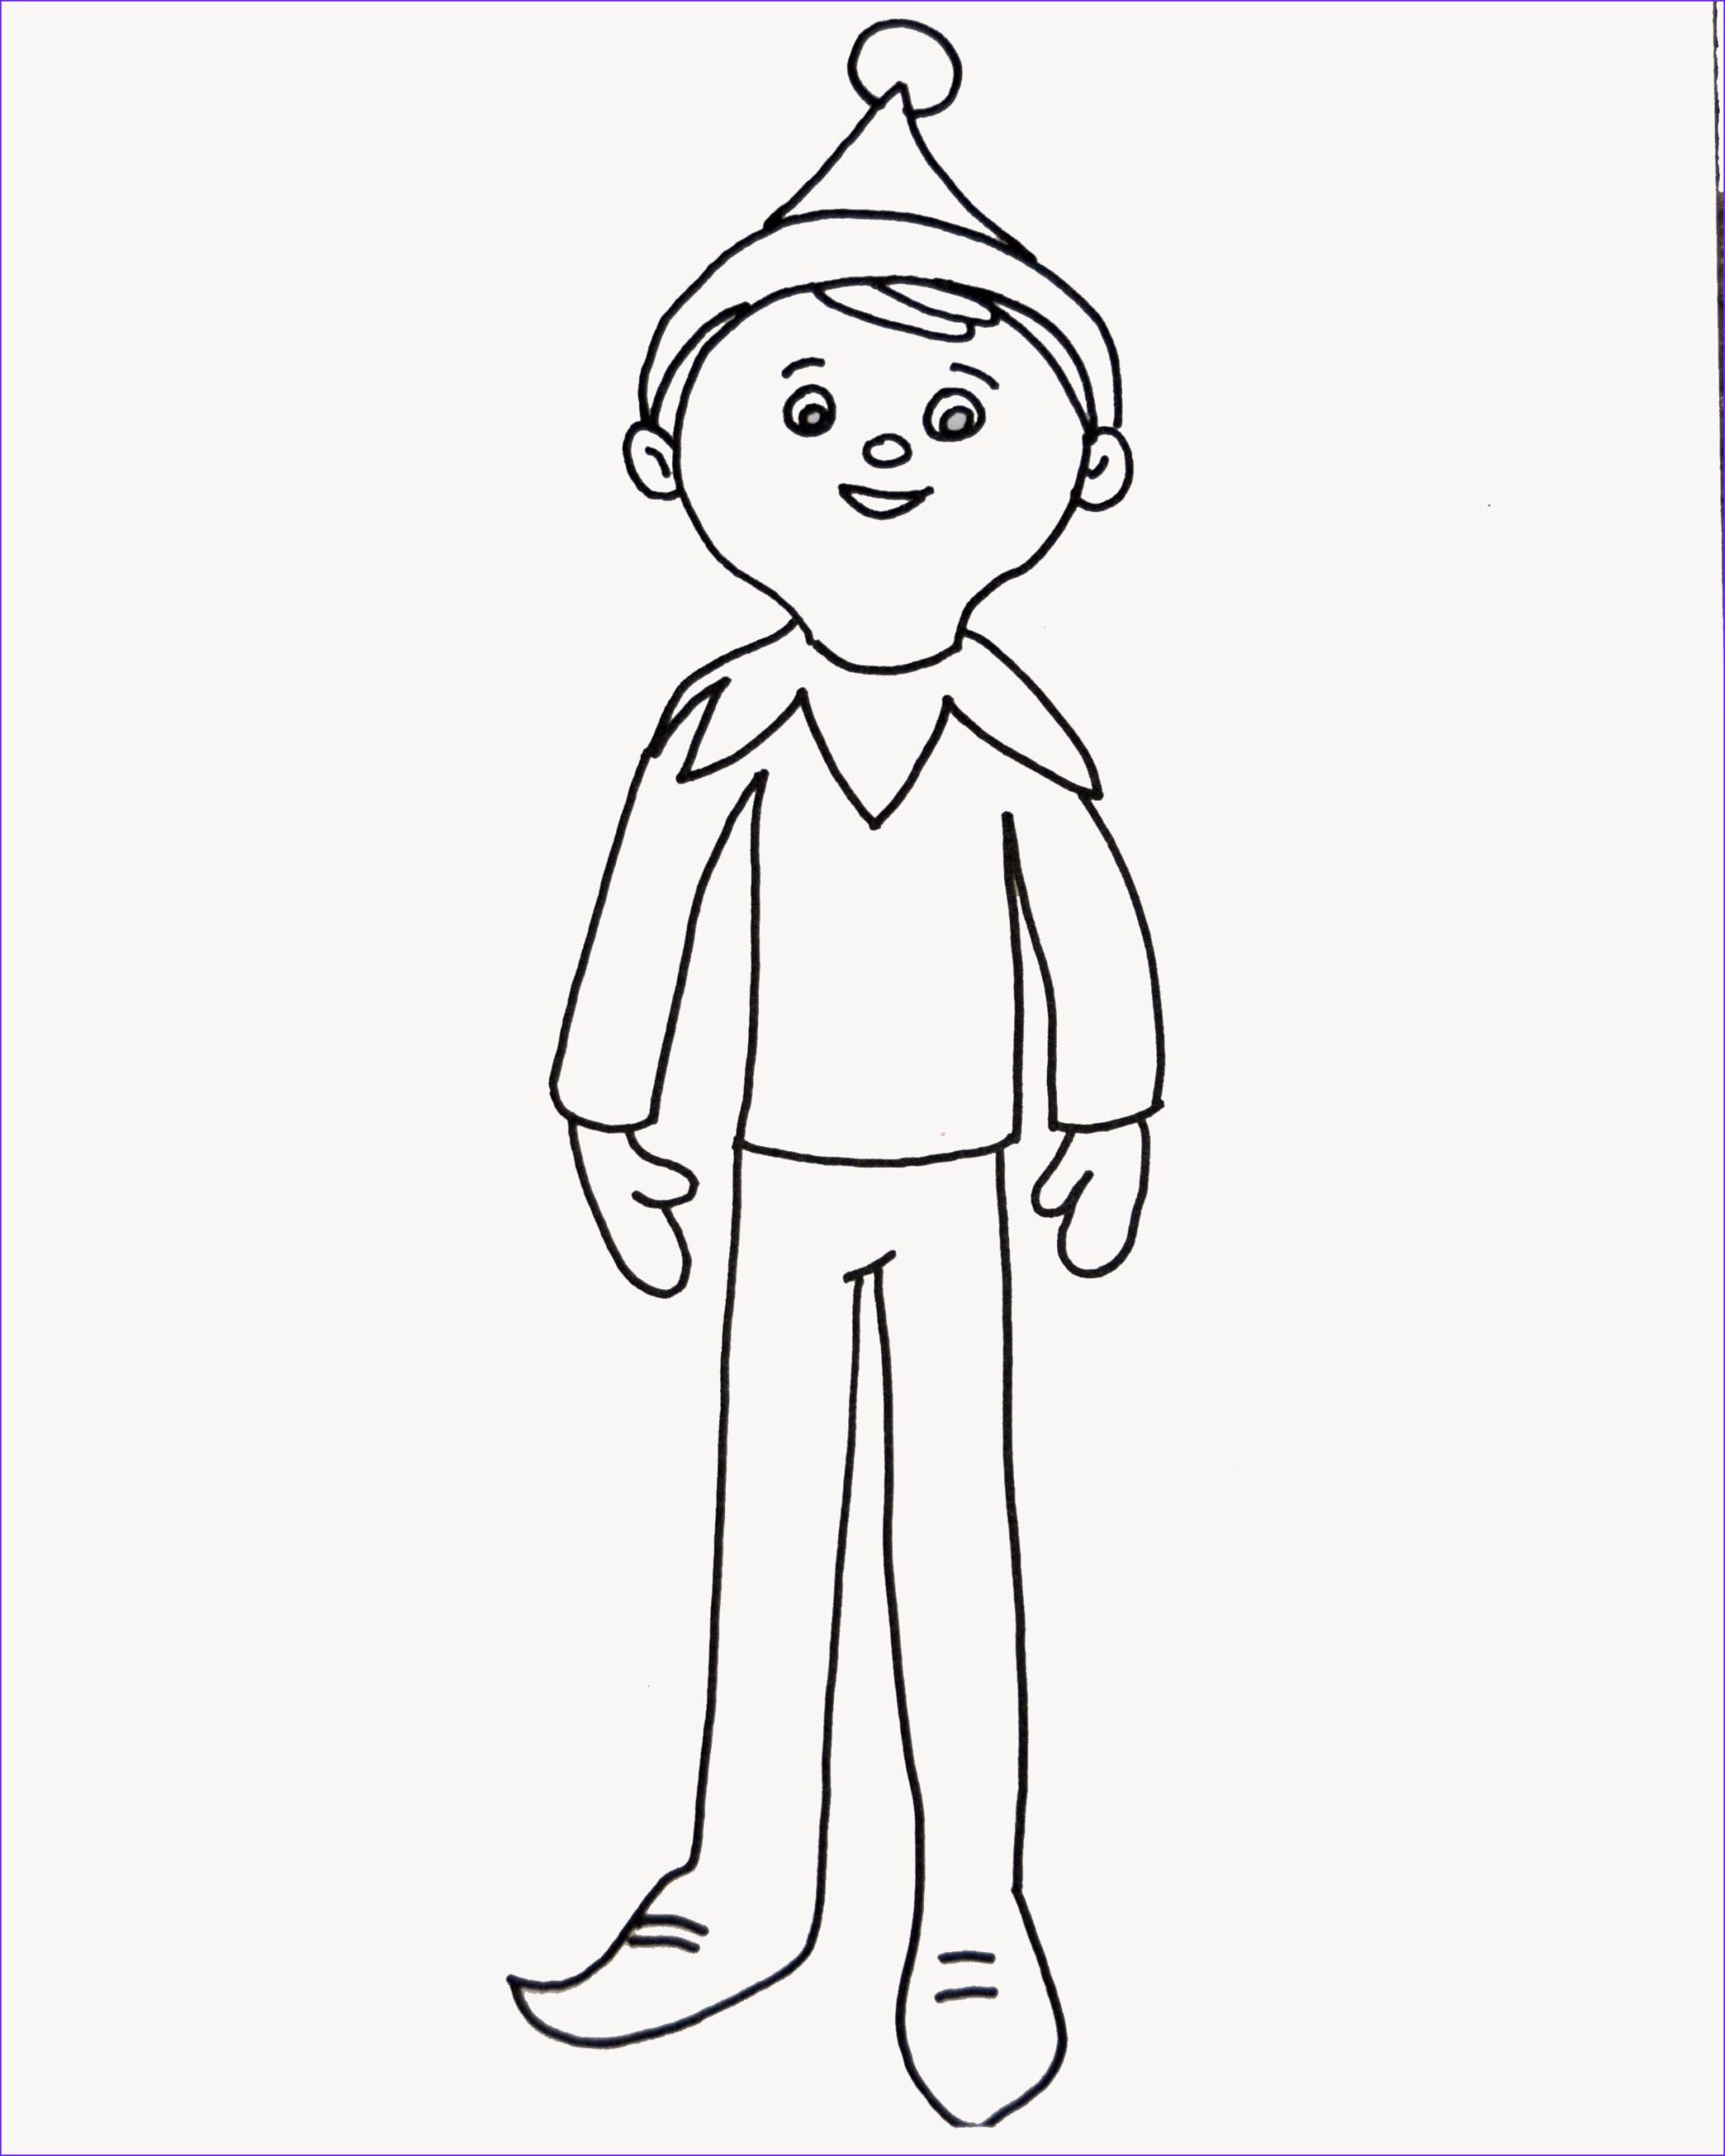 Elf Coloring Beautiful Images Elf On the Shelf Coloring Page for Elfie and the Kids to